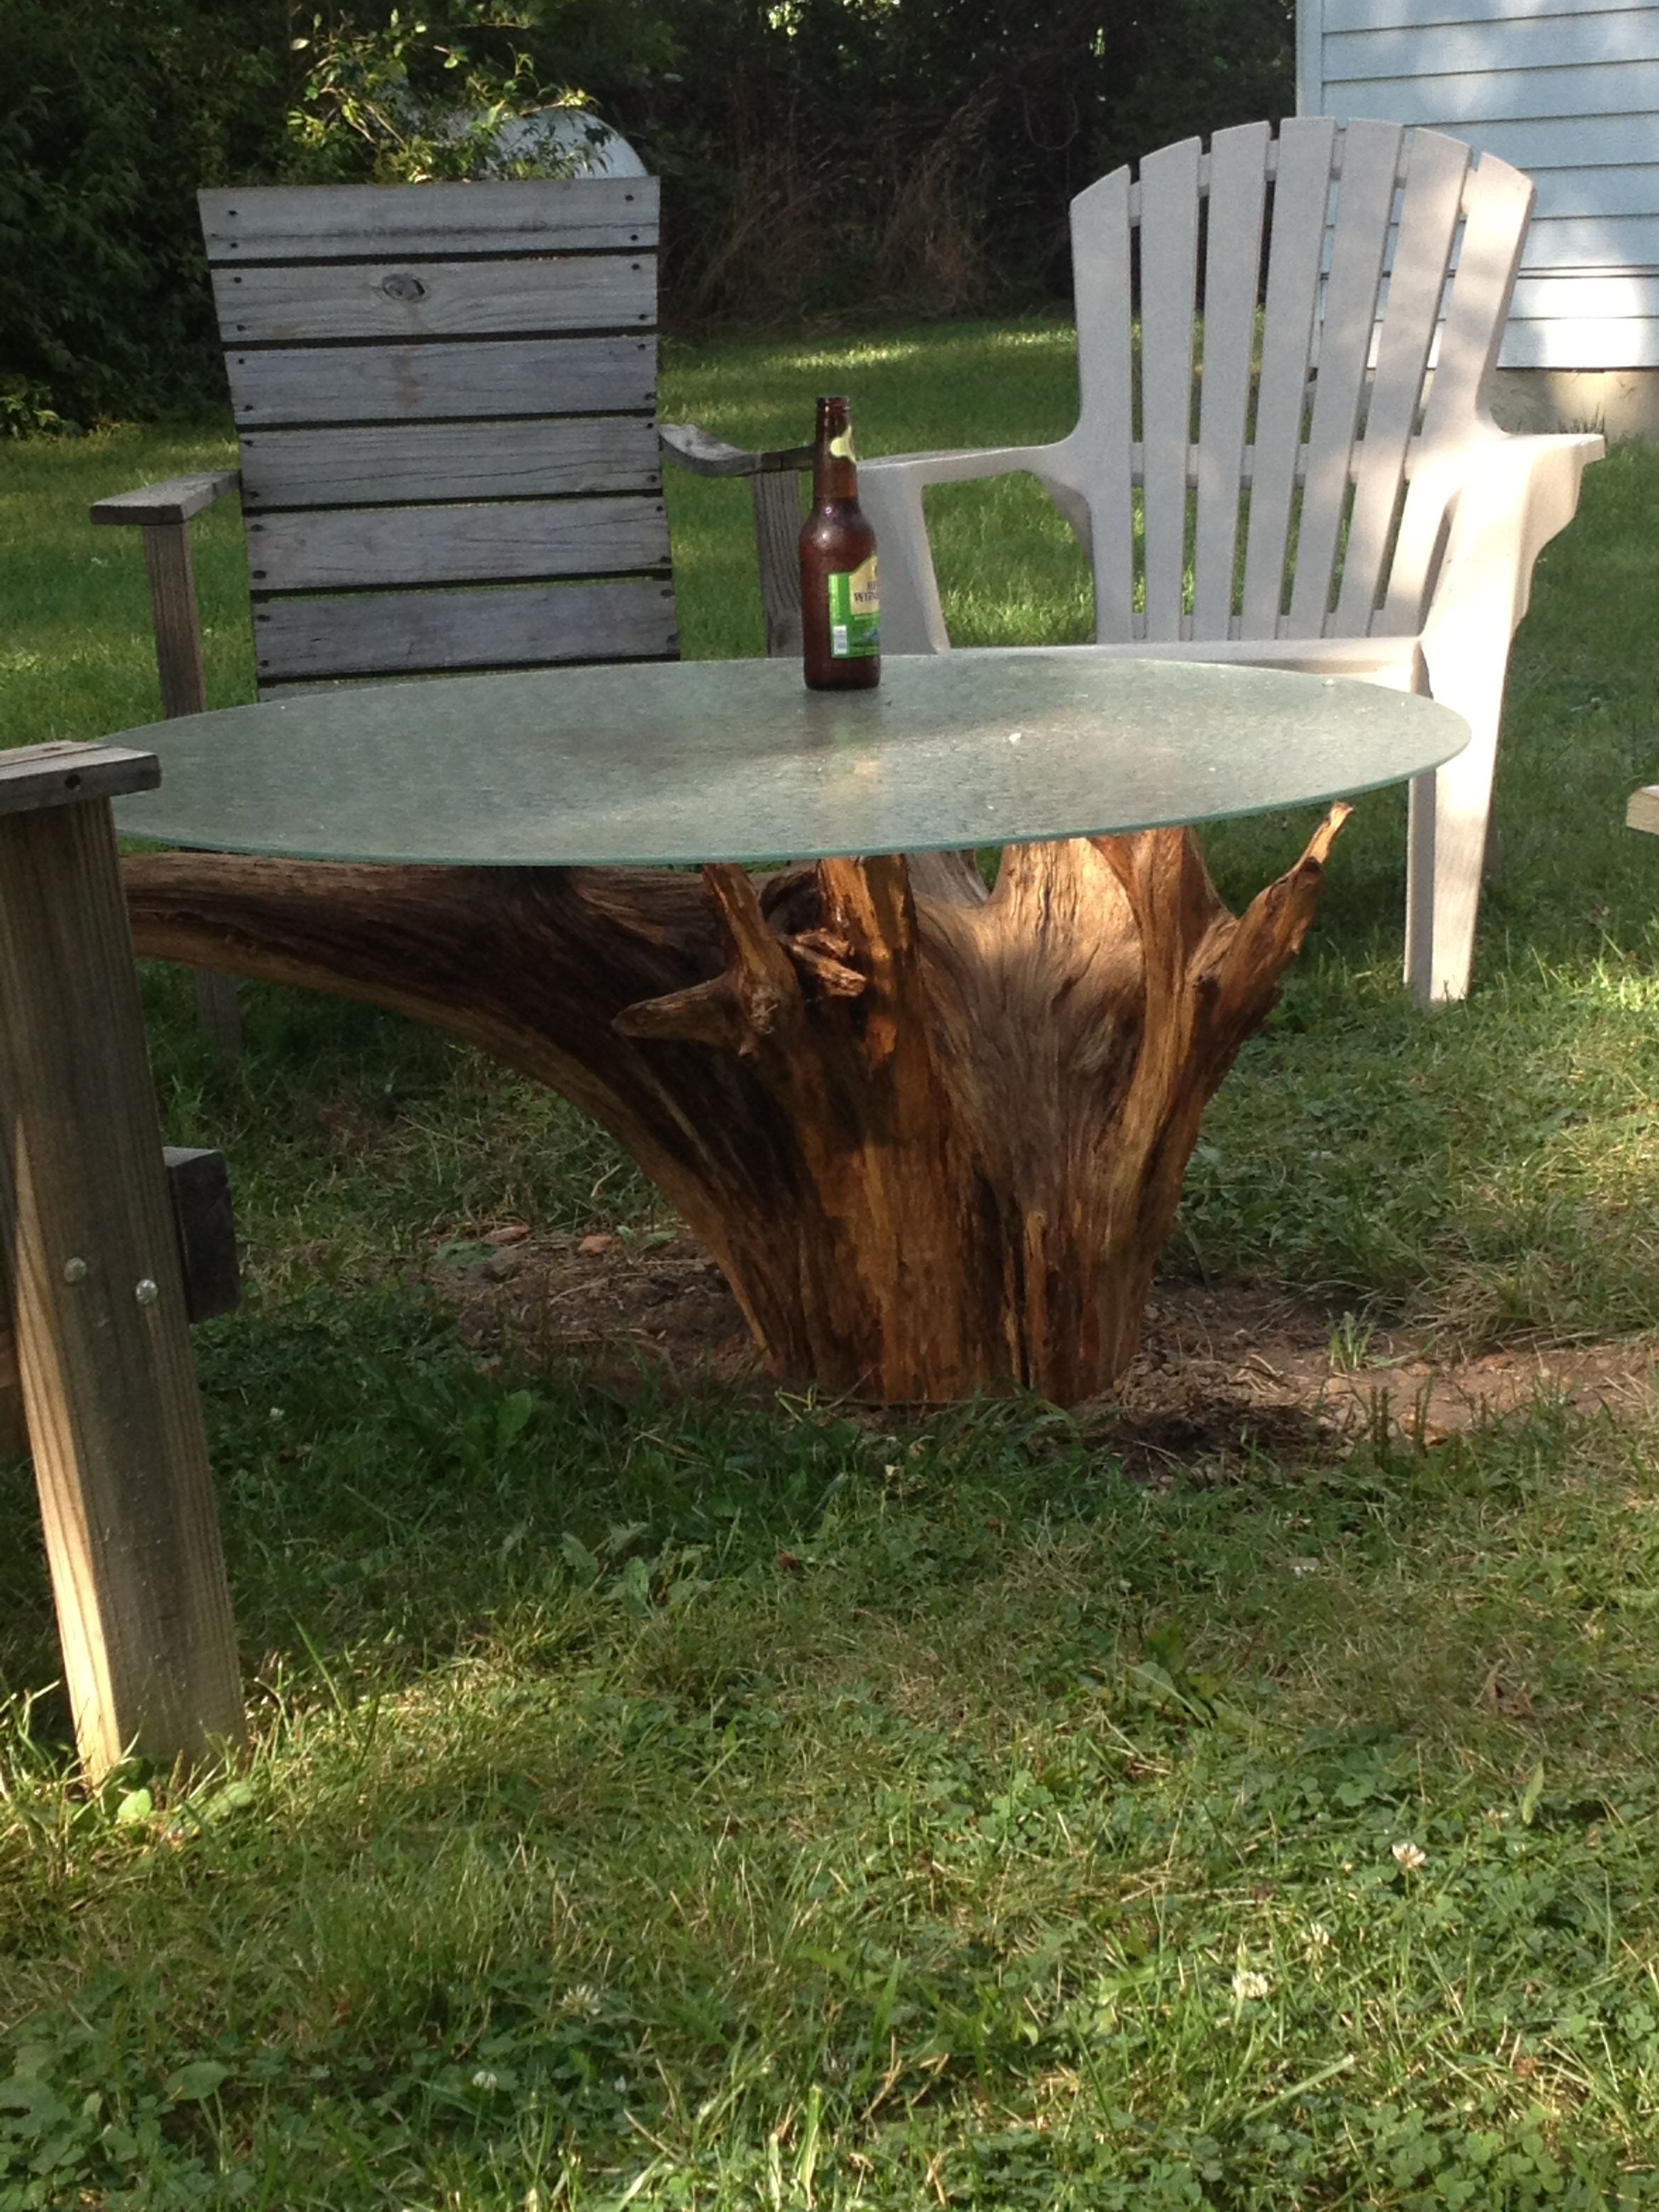 A cedar stump obtained from the family cemetery, power washed and sealed with tung oil.    The table top was obtained for free, and I even made scrap money on the aluminum base it originally came with.  Total cost - zero dollars